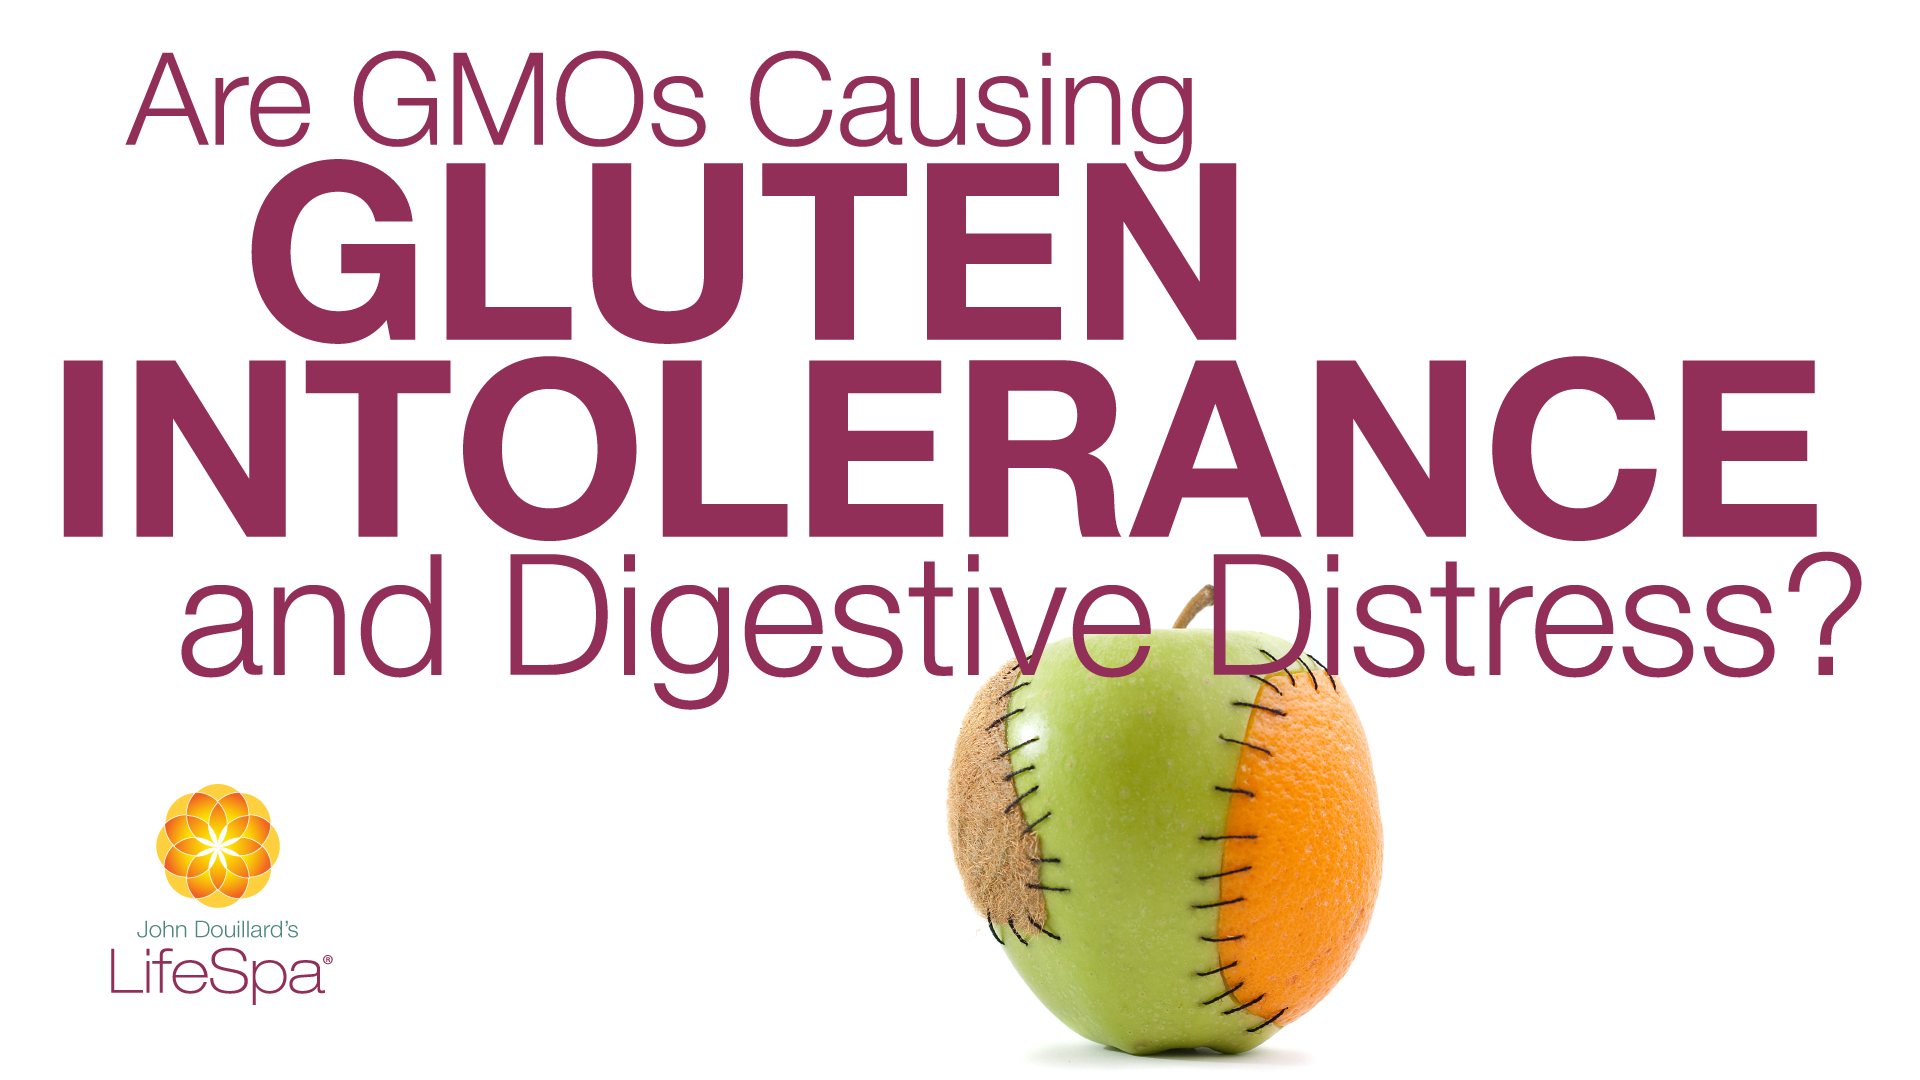 Are GMOs Causing Gluten Intolerance & Digestive Distress?